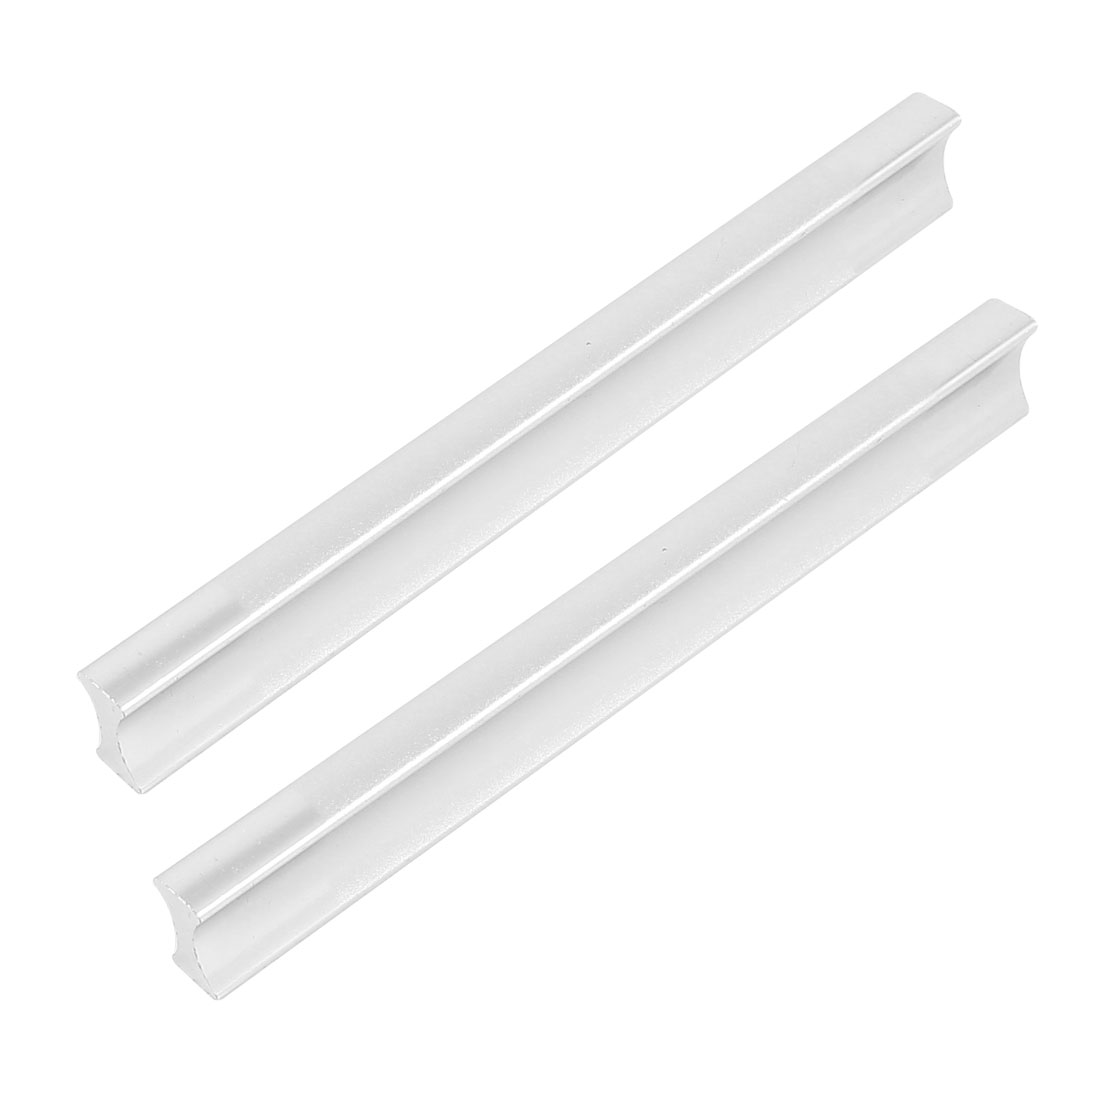 "Drawer Replacement Part 5.2"" Length Finger Pull Handle Silver Tone 2 Pcs"